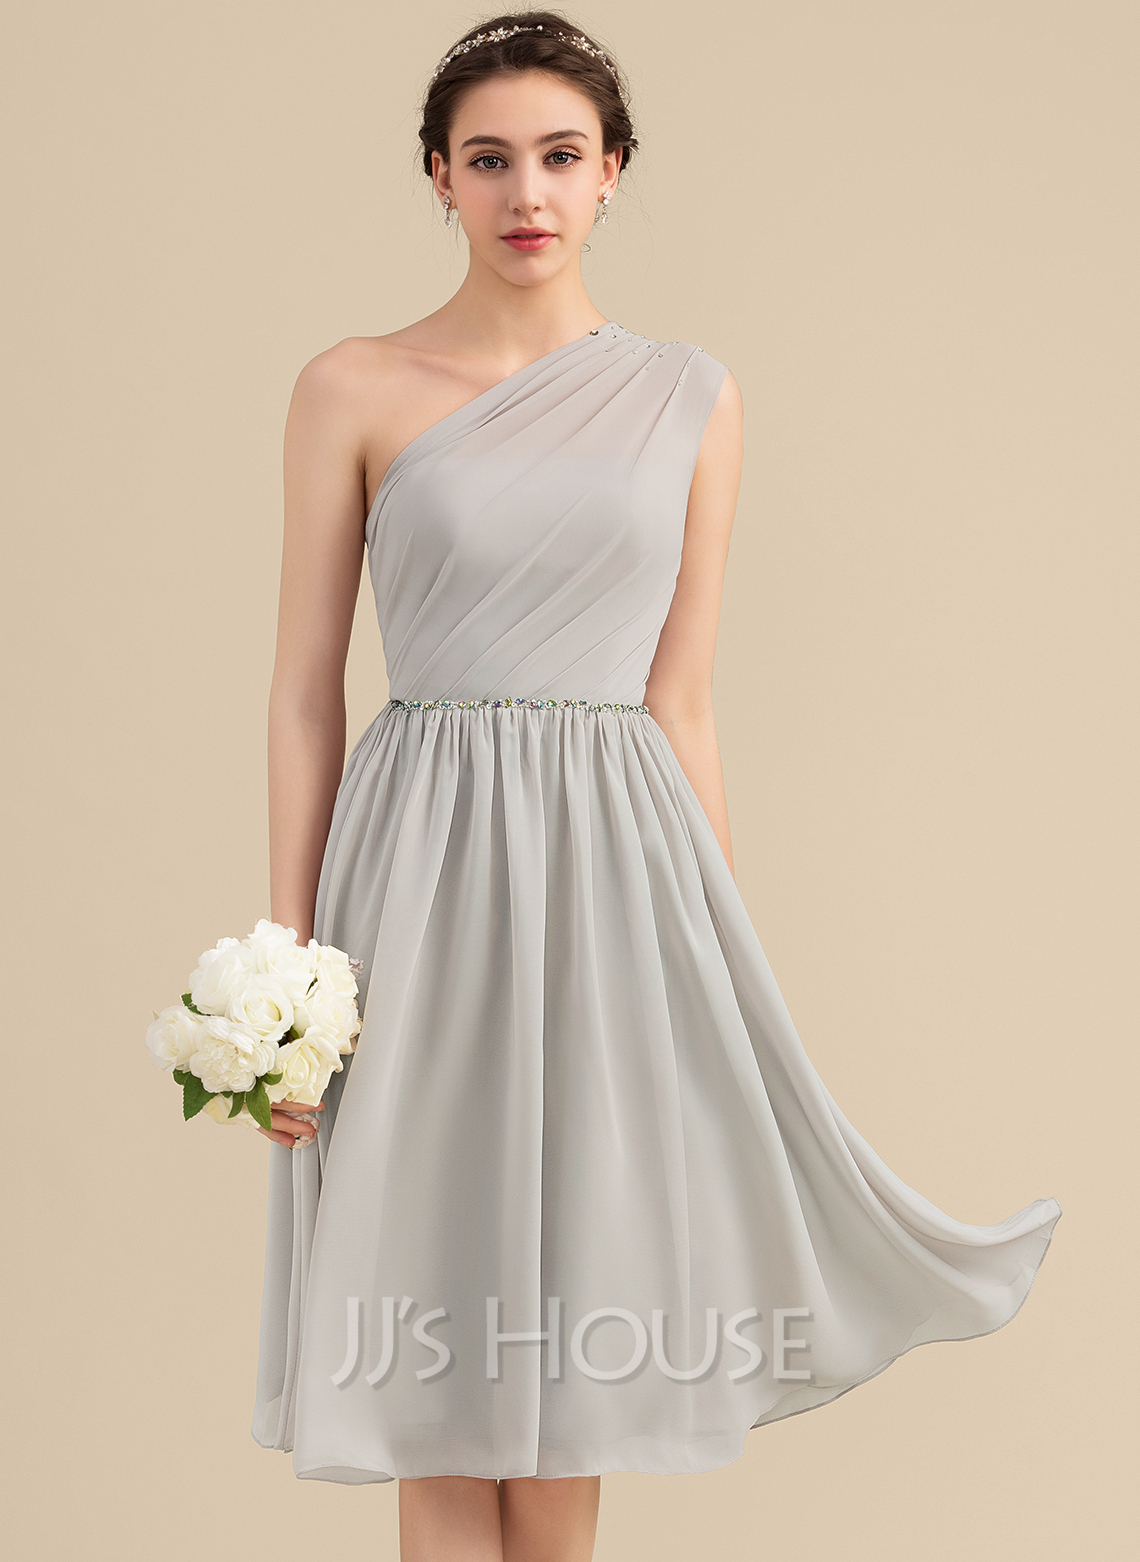 One-Shoulder Knee-Length Chiffon Bridesmaid Dress With Beading